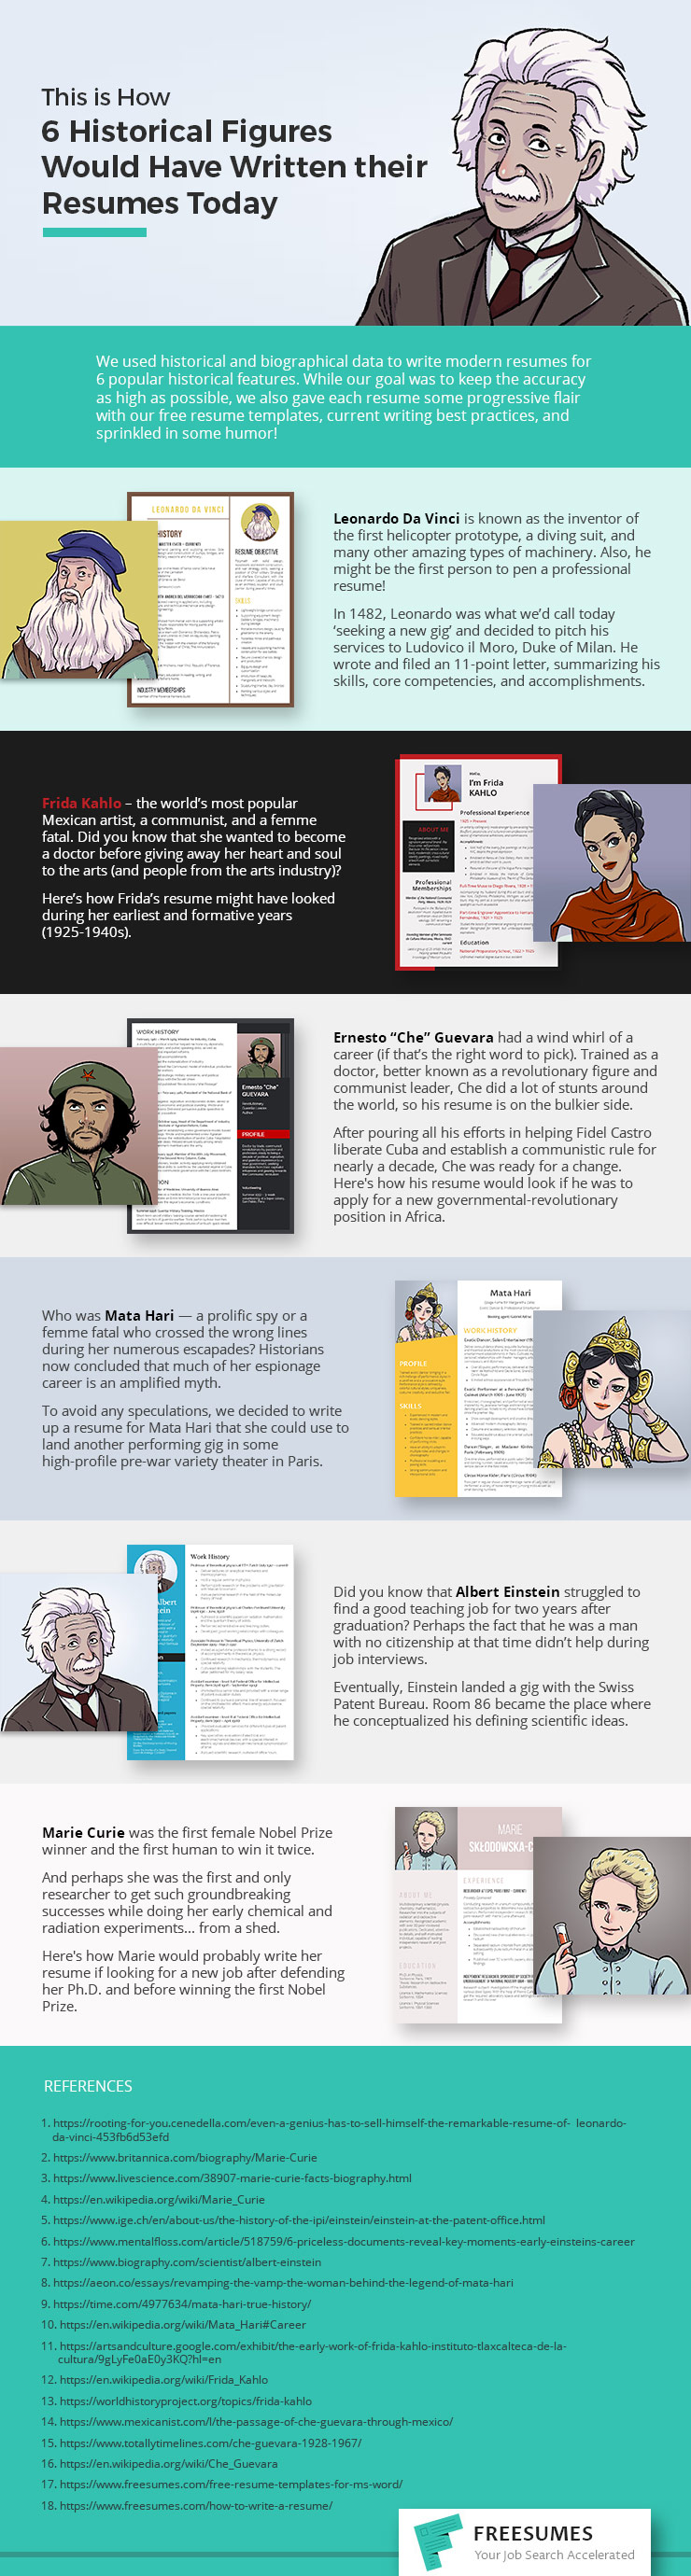 6 resumes from 6 historical figures